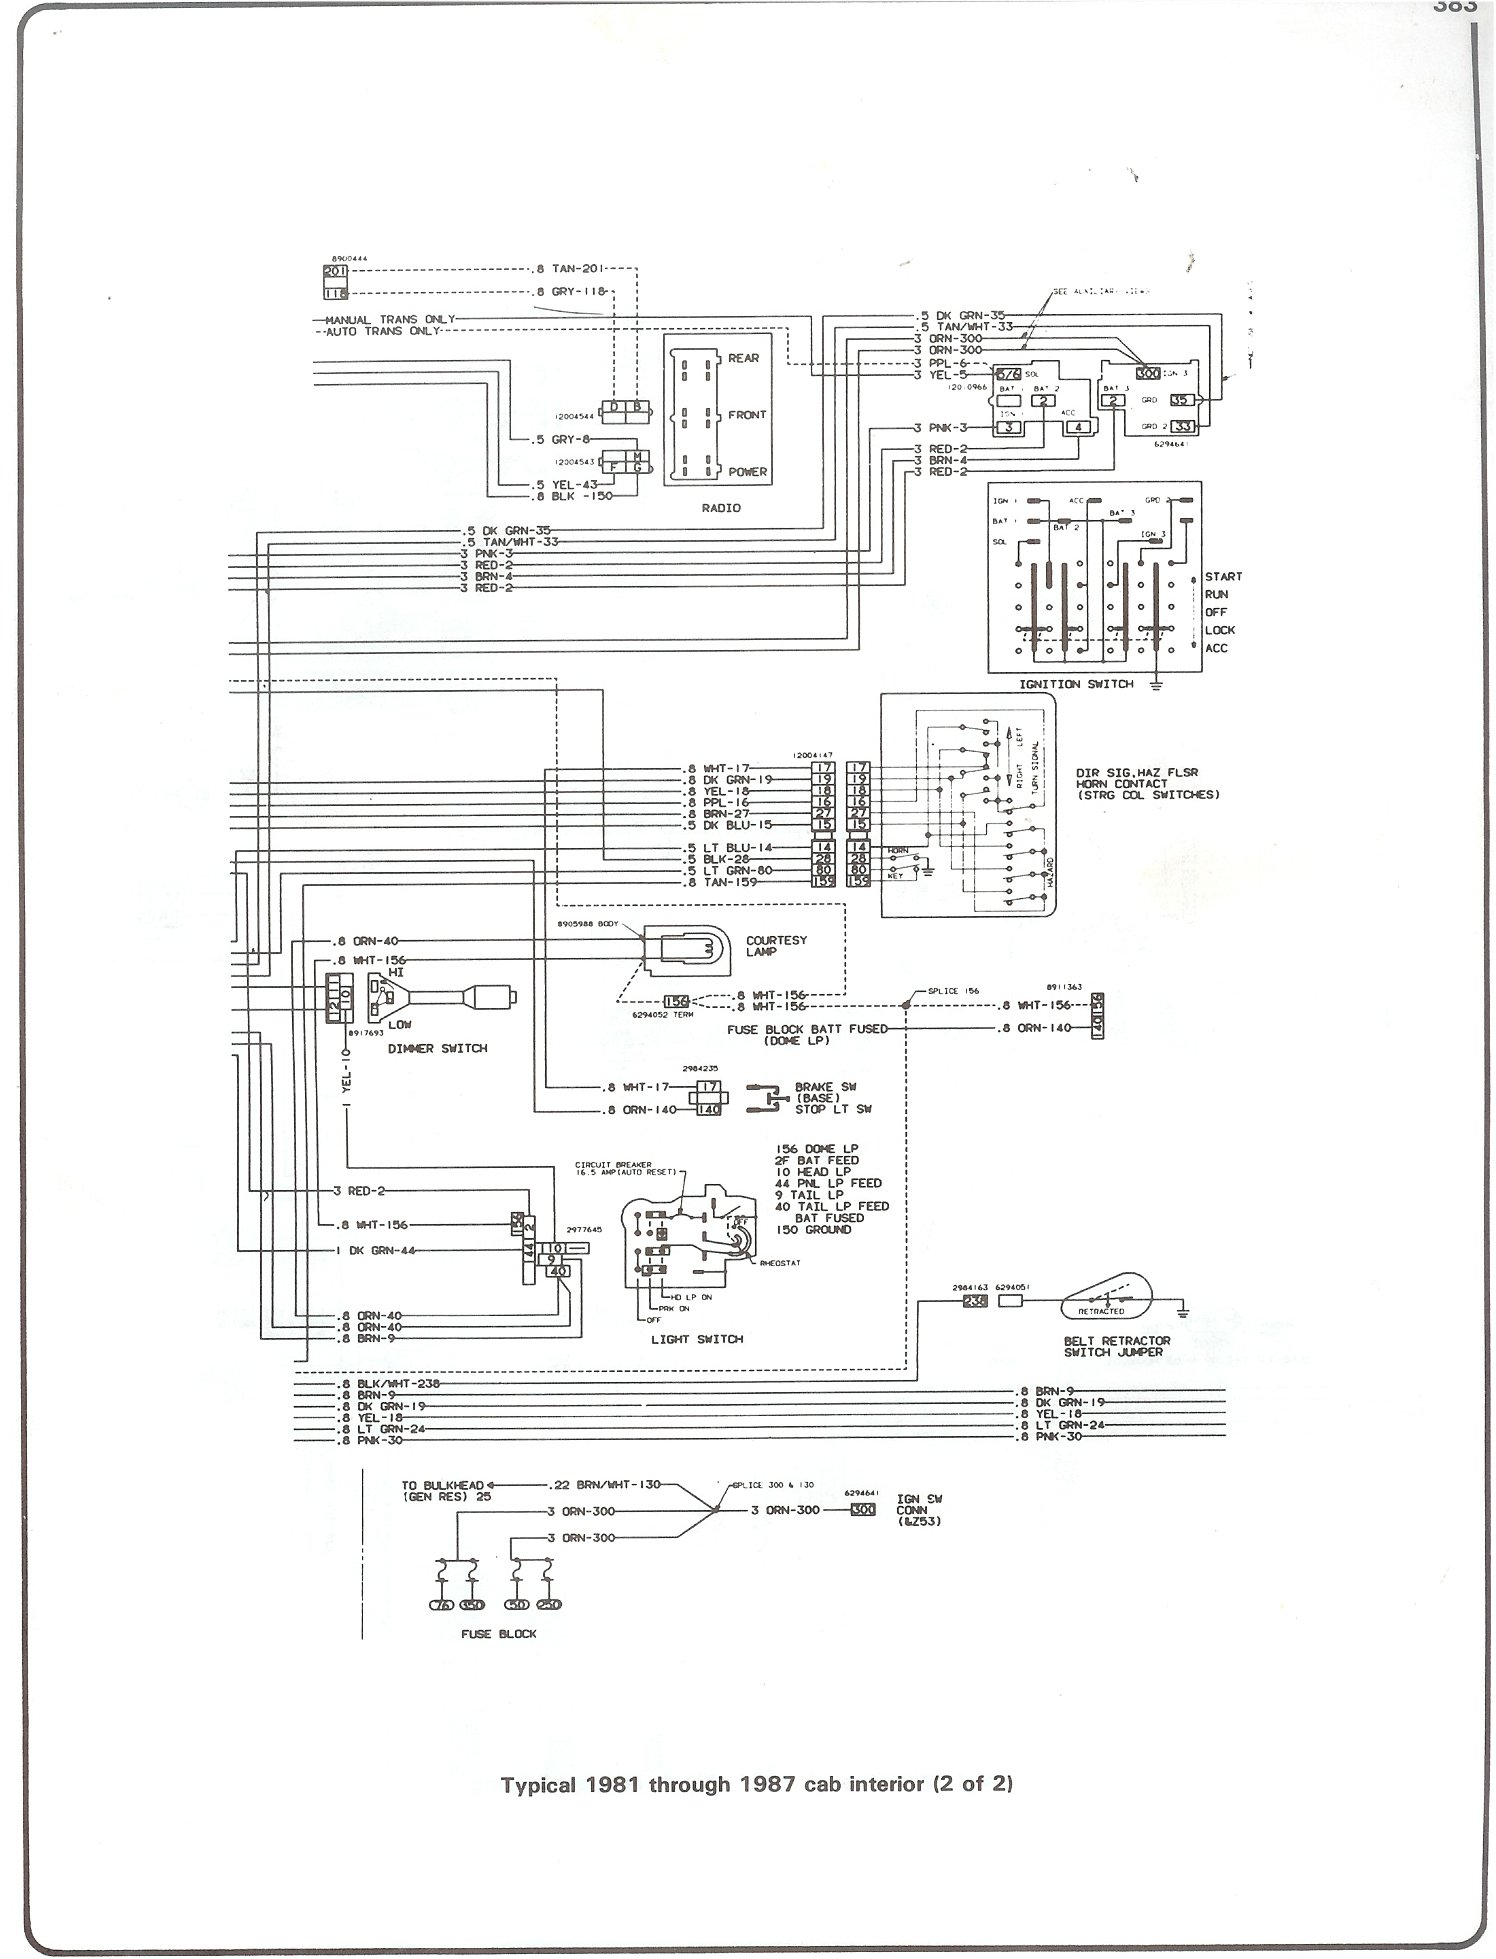 1987 Chevy C30 Wiring Diagram Not Lossing Harness For S 10 Pickup Complete 73 87 Diagrams Rh Forum 87chevytrucks Com 1500